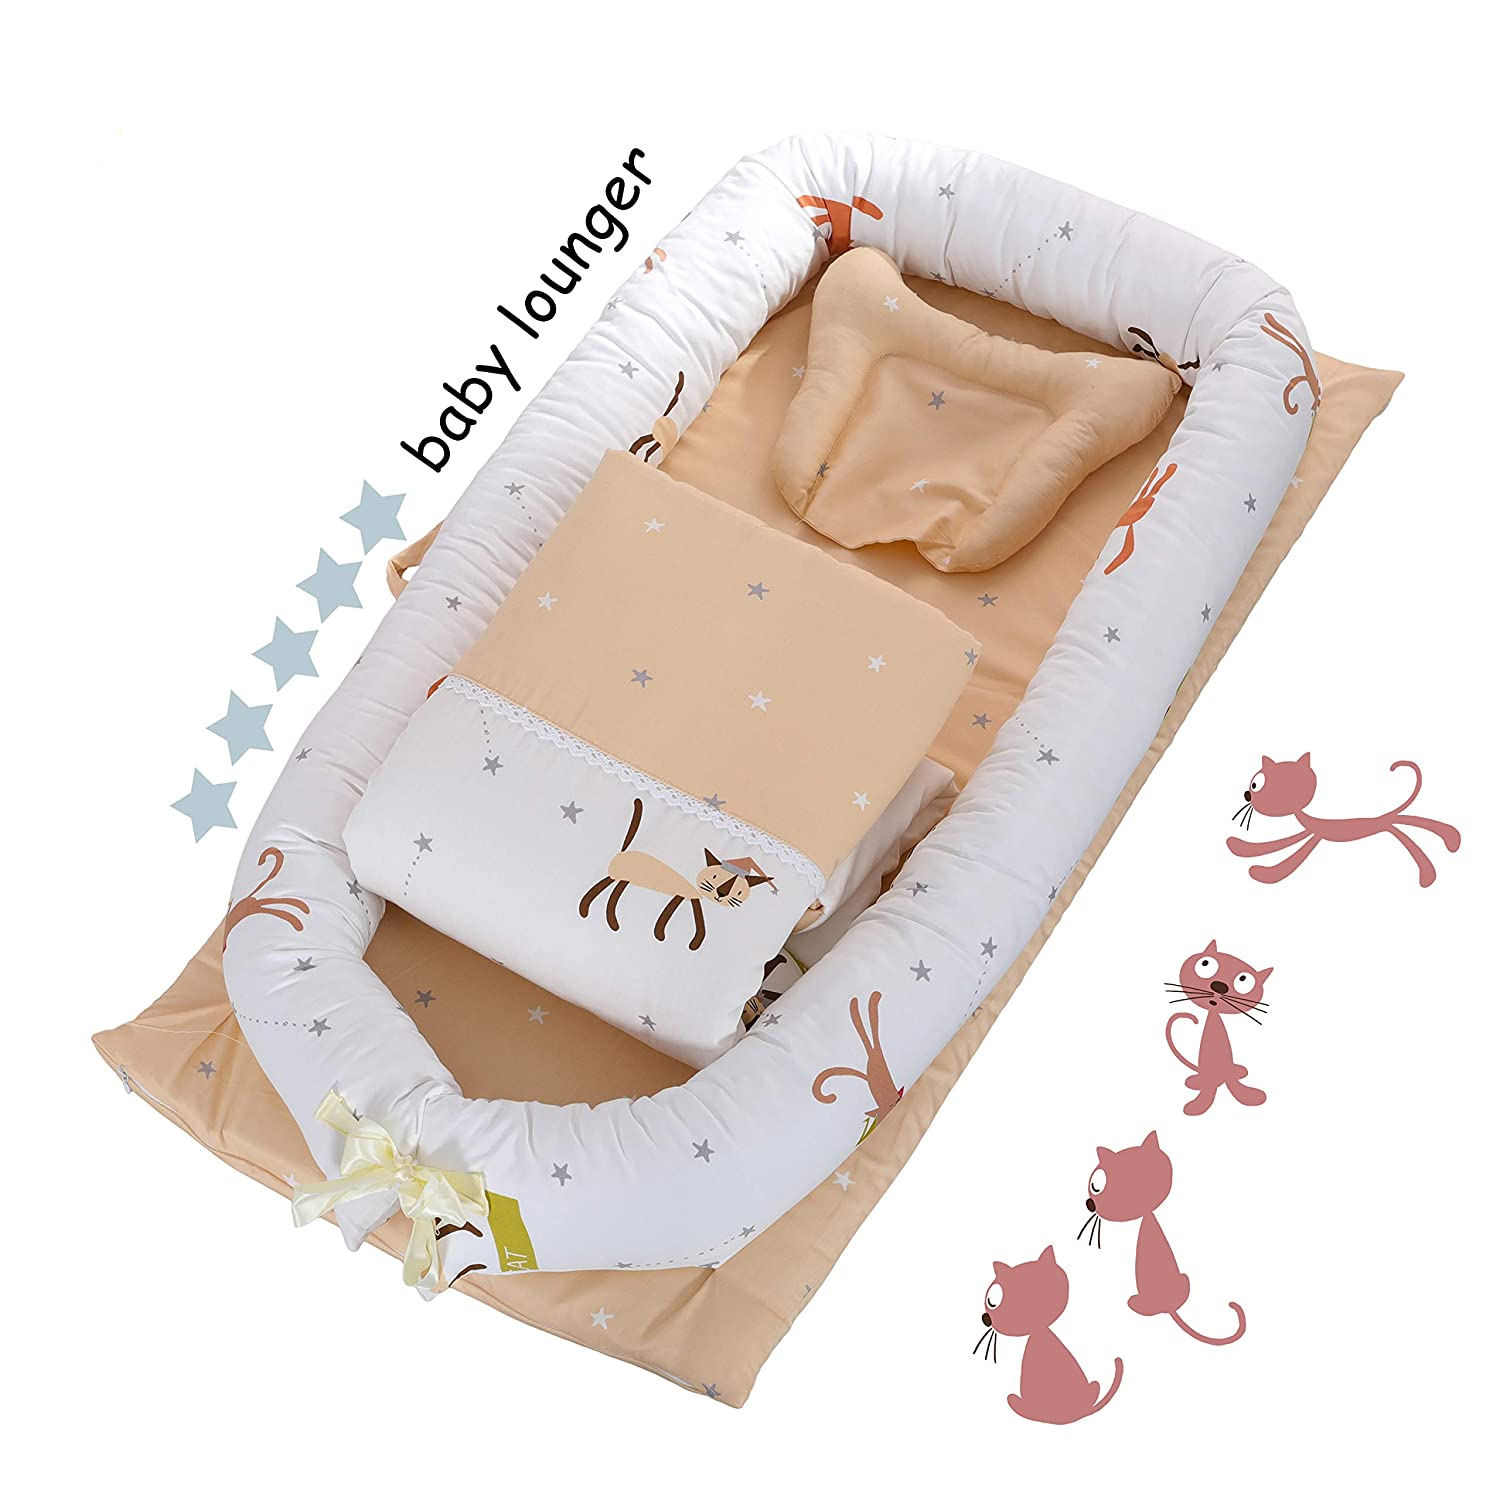 Top 10 Best Baby Lounger Pillow (2020 Reviews & Buying Guide) 4